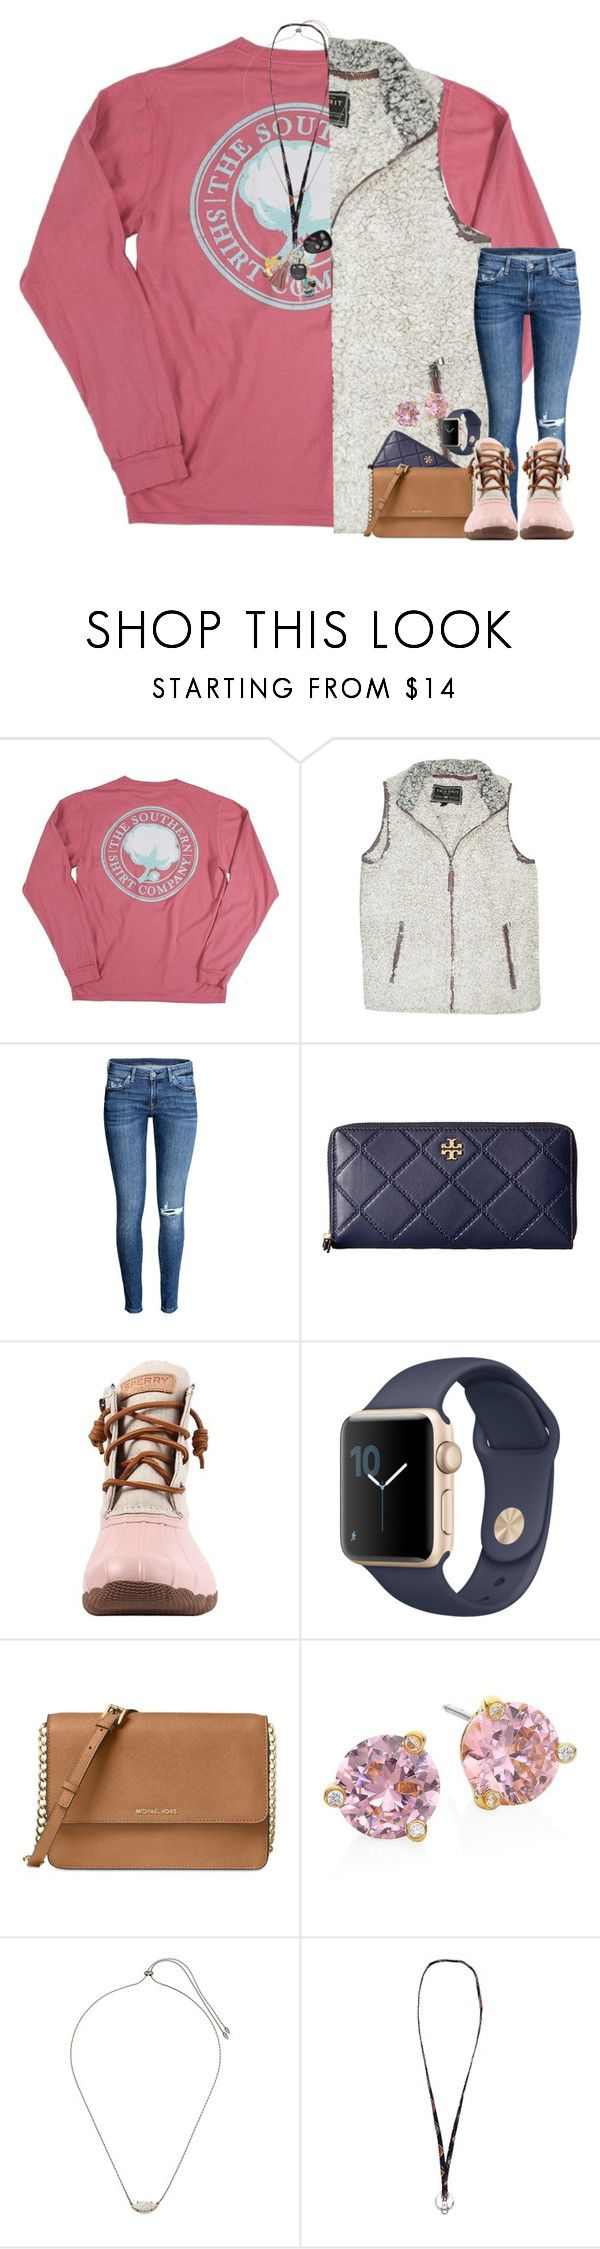 """Actual ootd for the bonfire"" by taylormaccallister ❤ liked on Polyvore featuring True Grit, H&M, Tory Burch, Sperry, Michael Kors, Kate Spade, Kendra Scott and Vera Bradley"